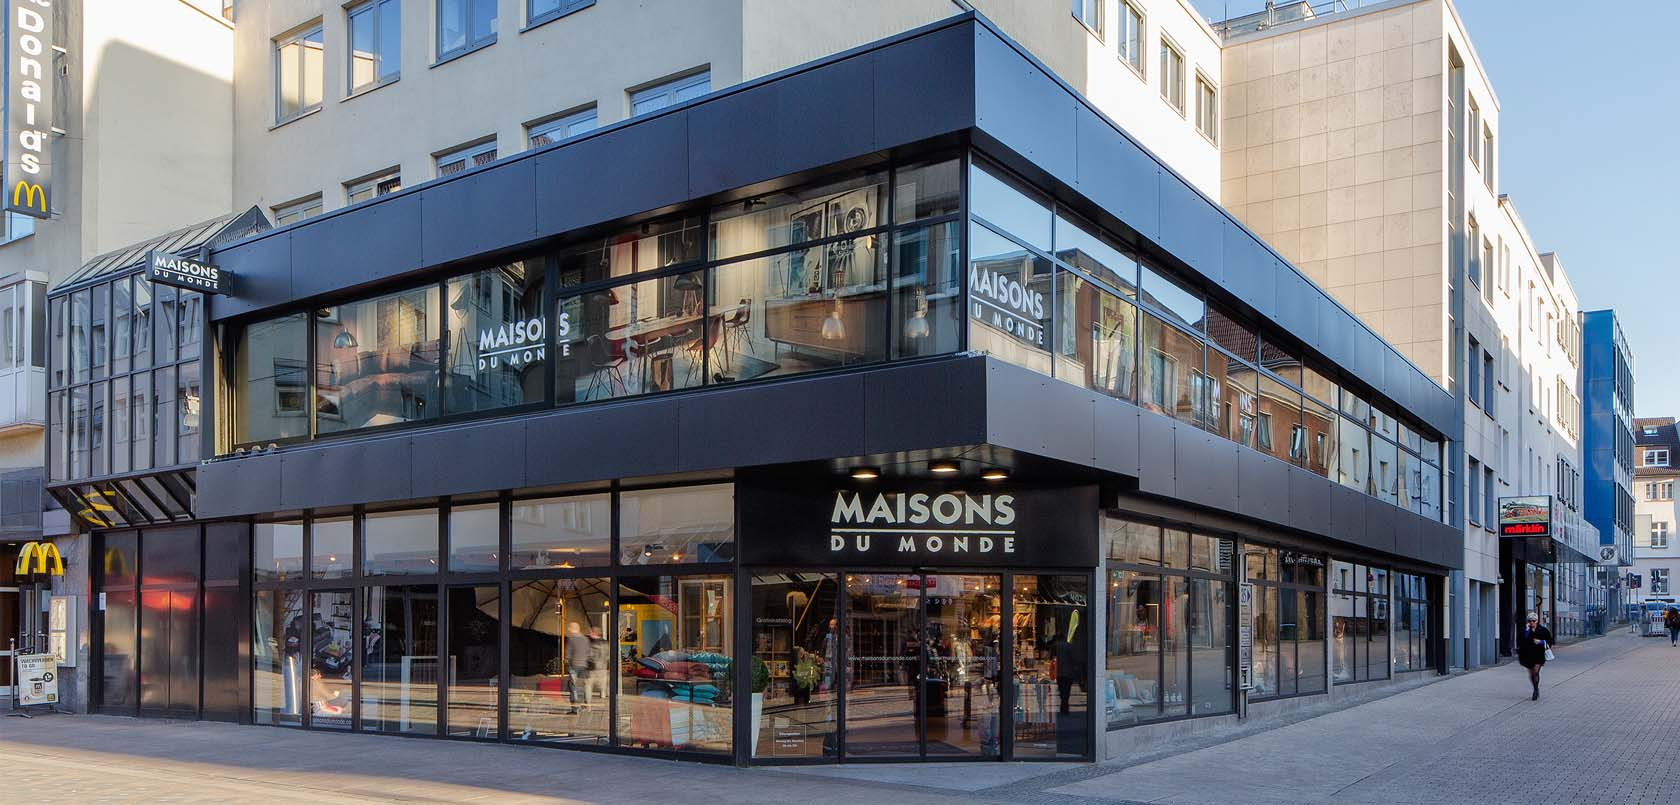 Affordable maisons du monde store in dortmund germany with for Maison de monde uk